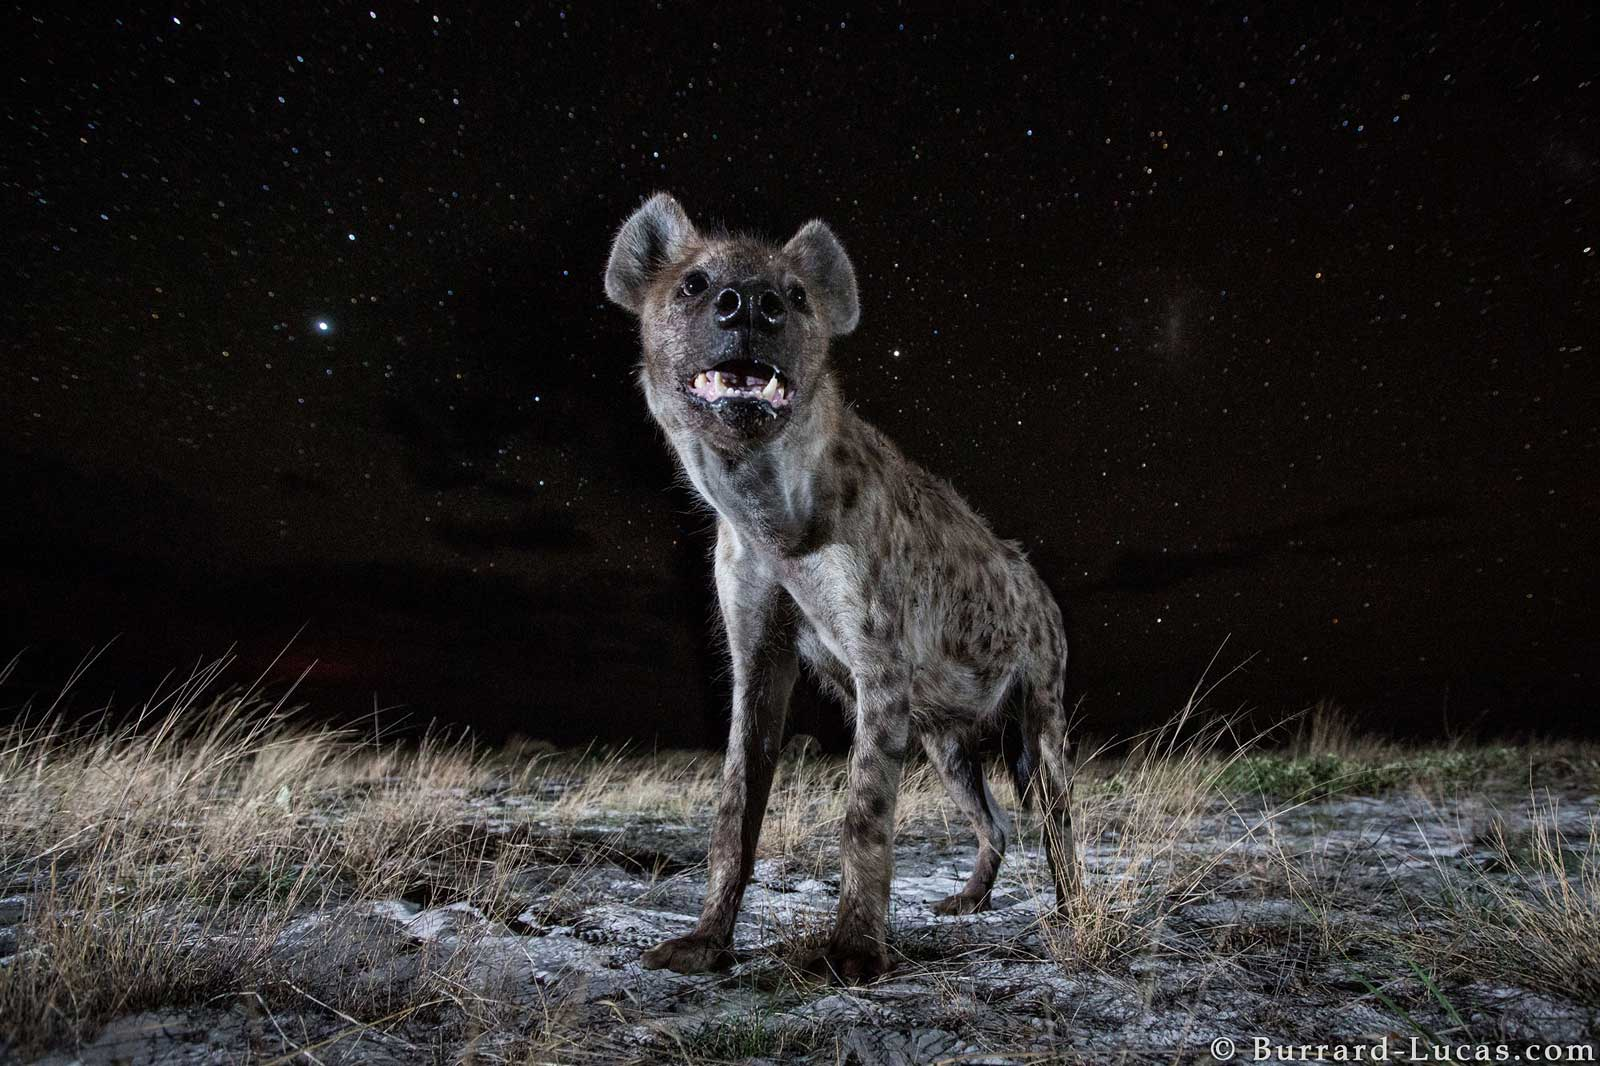 Hyena Hatred : Why Do People Detest Hyenas?